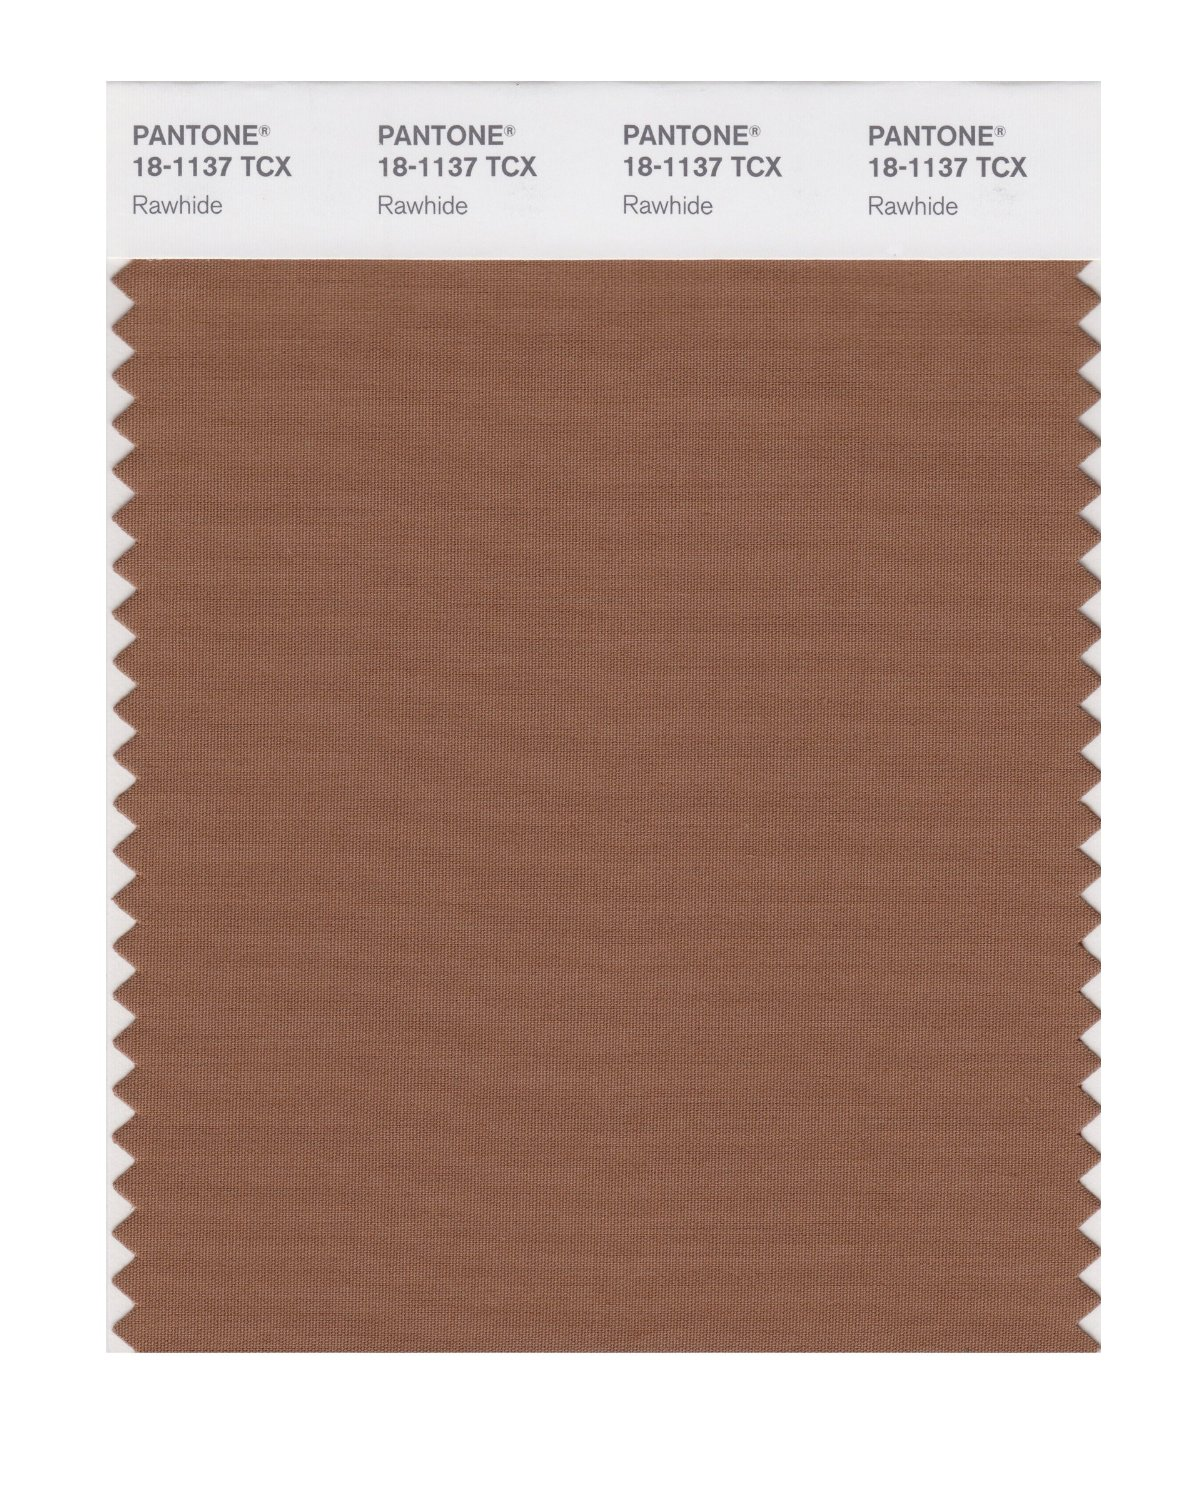 Pantone Smart Swatch 18-1137 Rawhide